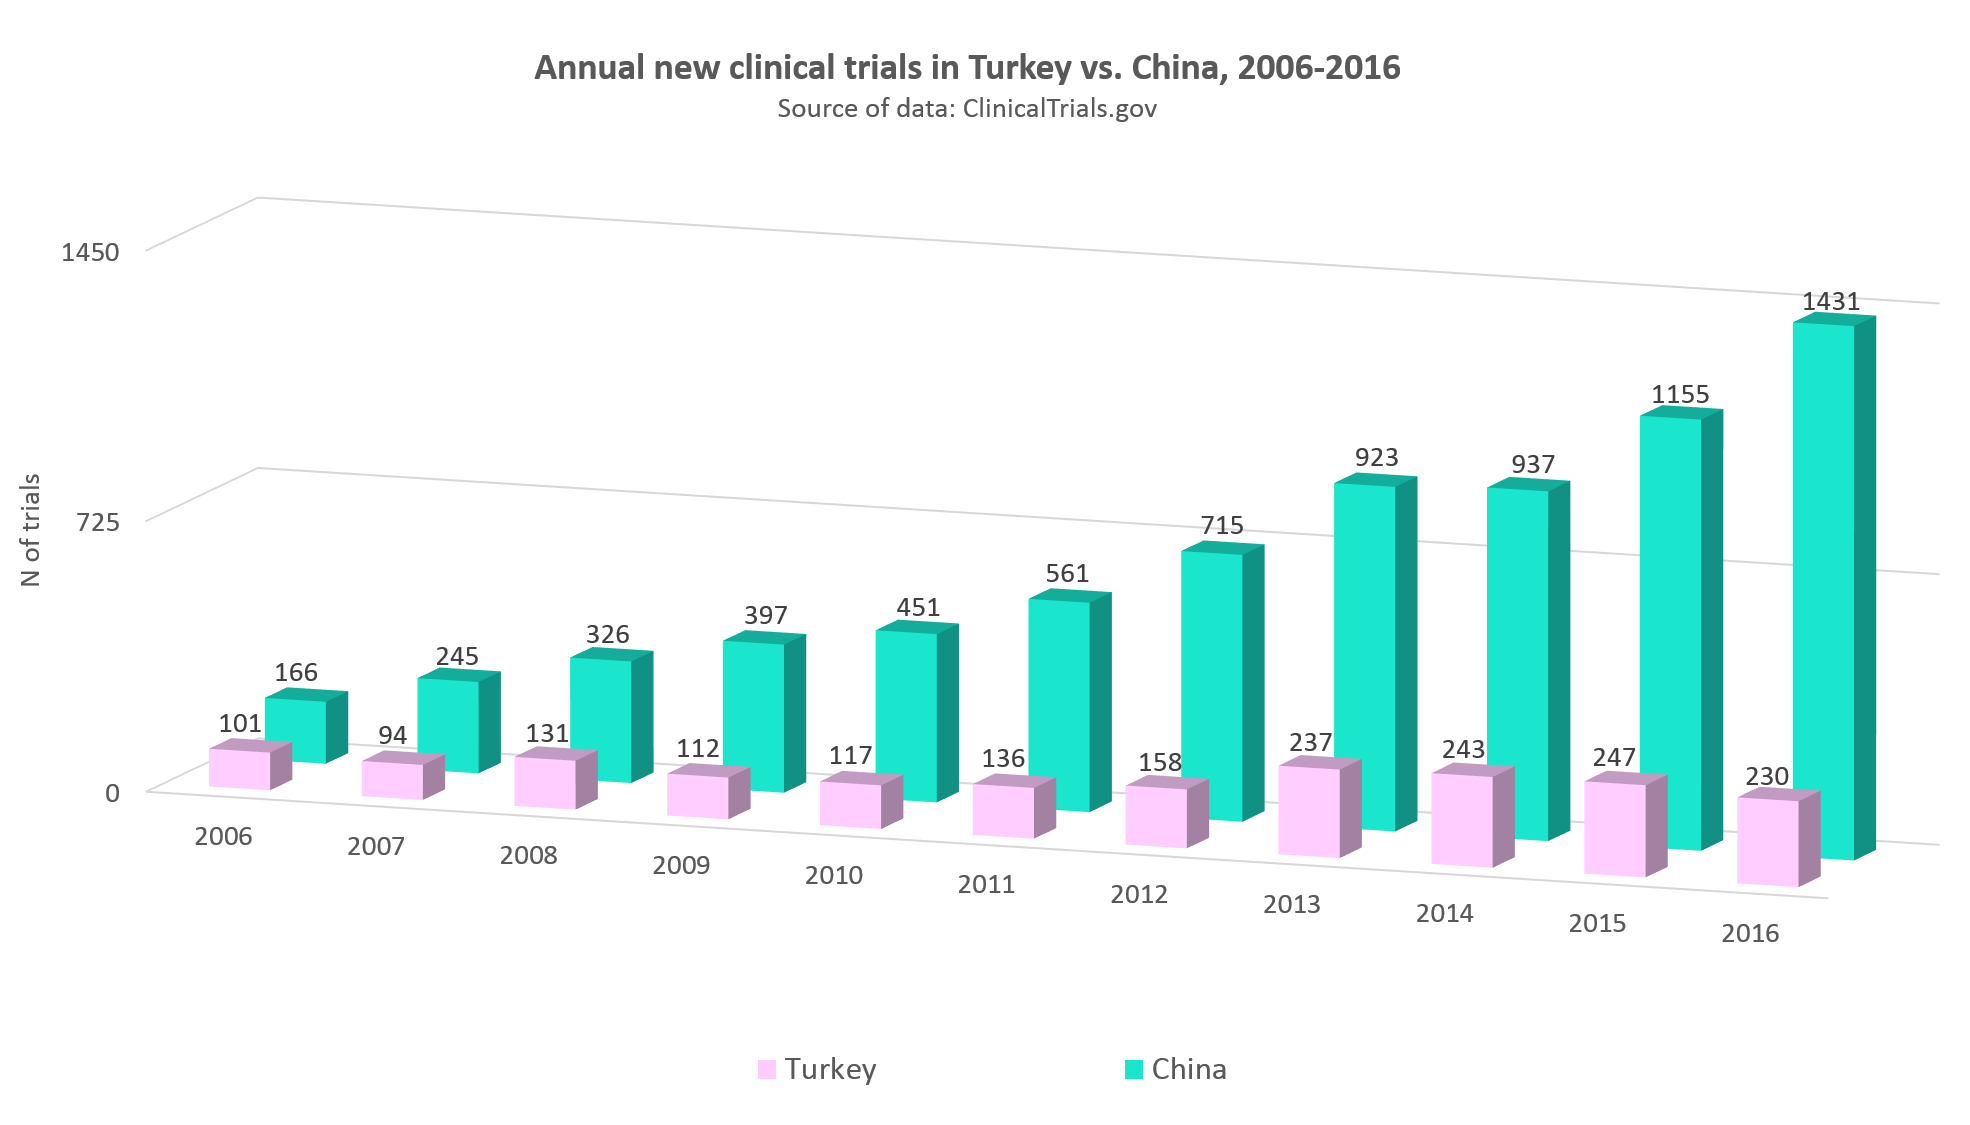 Annual statistics of clinical trials in Turkey vs. China, 2006-2016